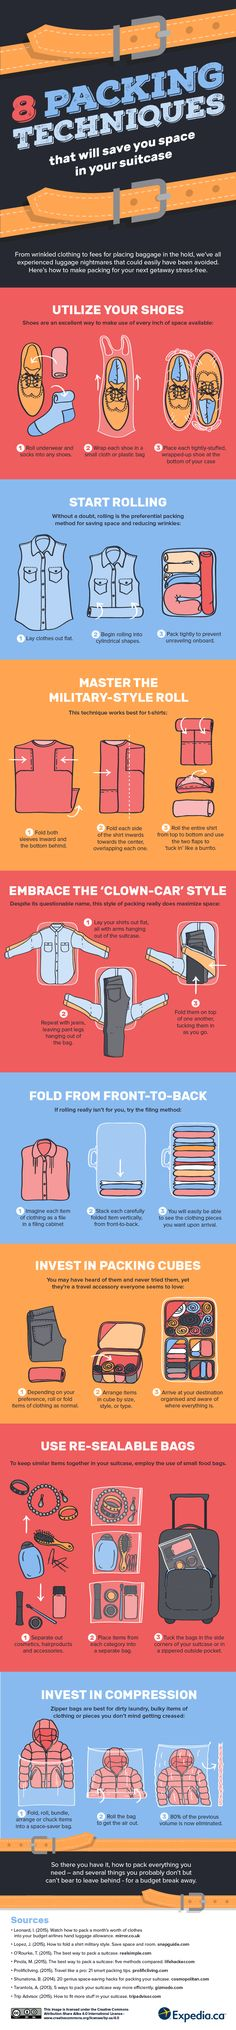 8 Packing Techniques That Will Save You Space In Your Suitcase #Infographic…